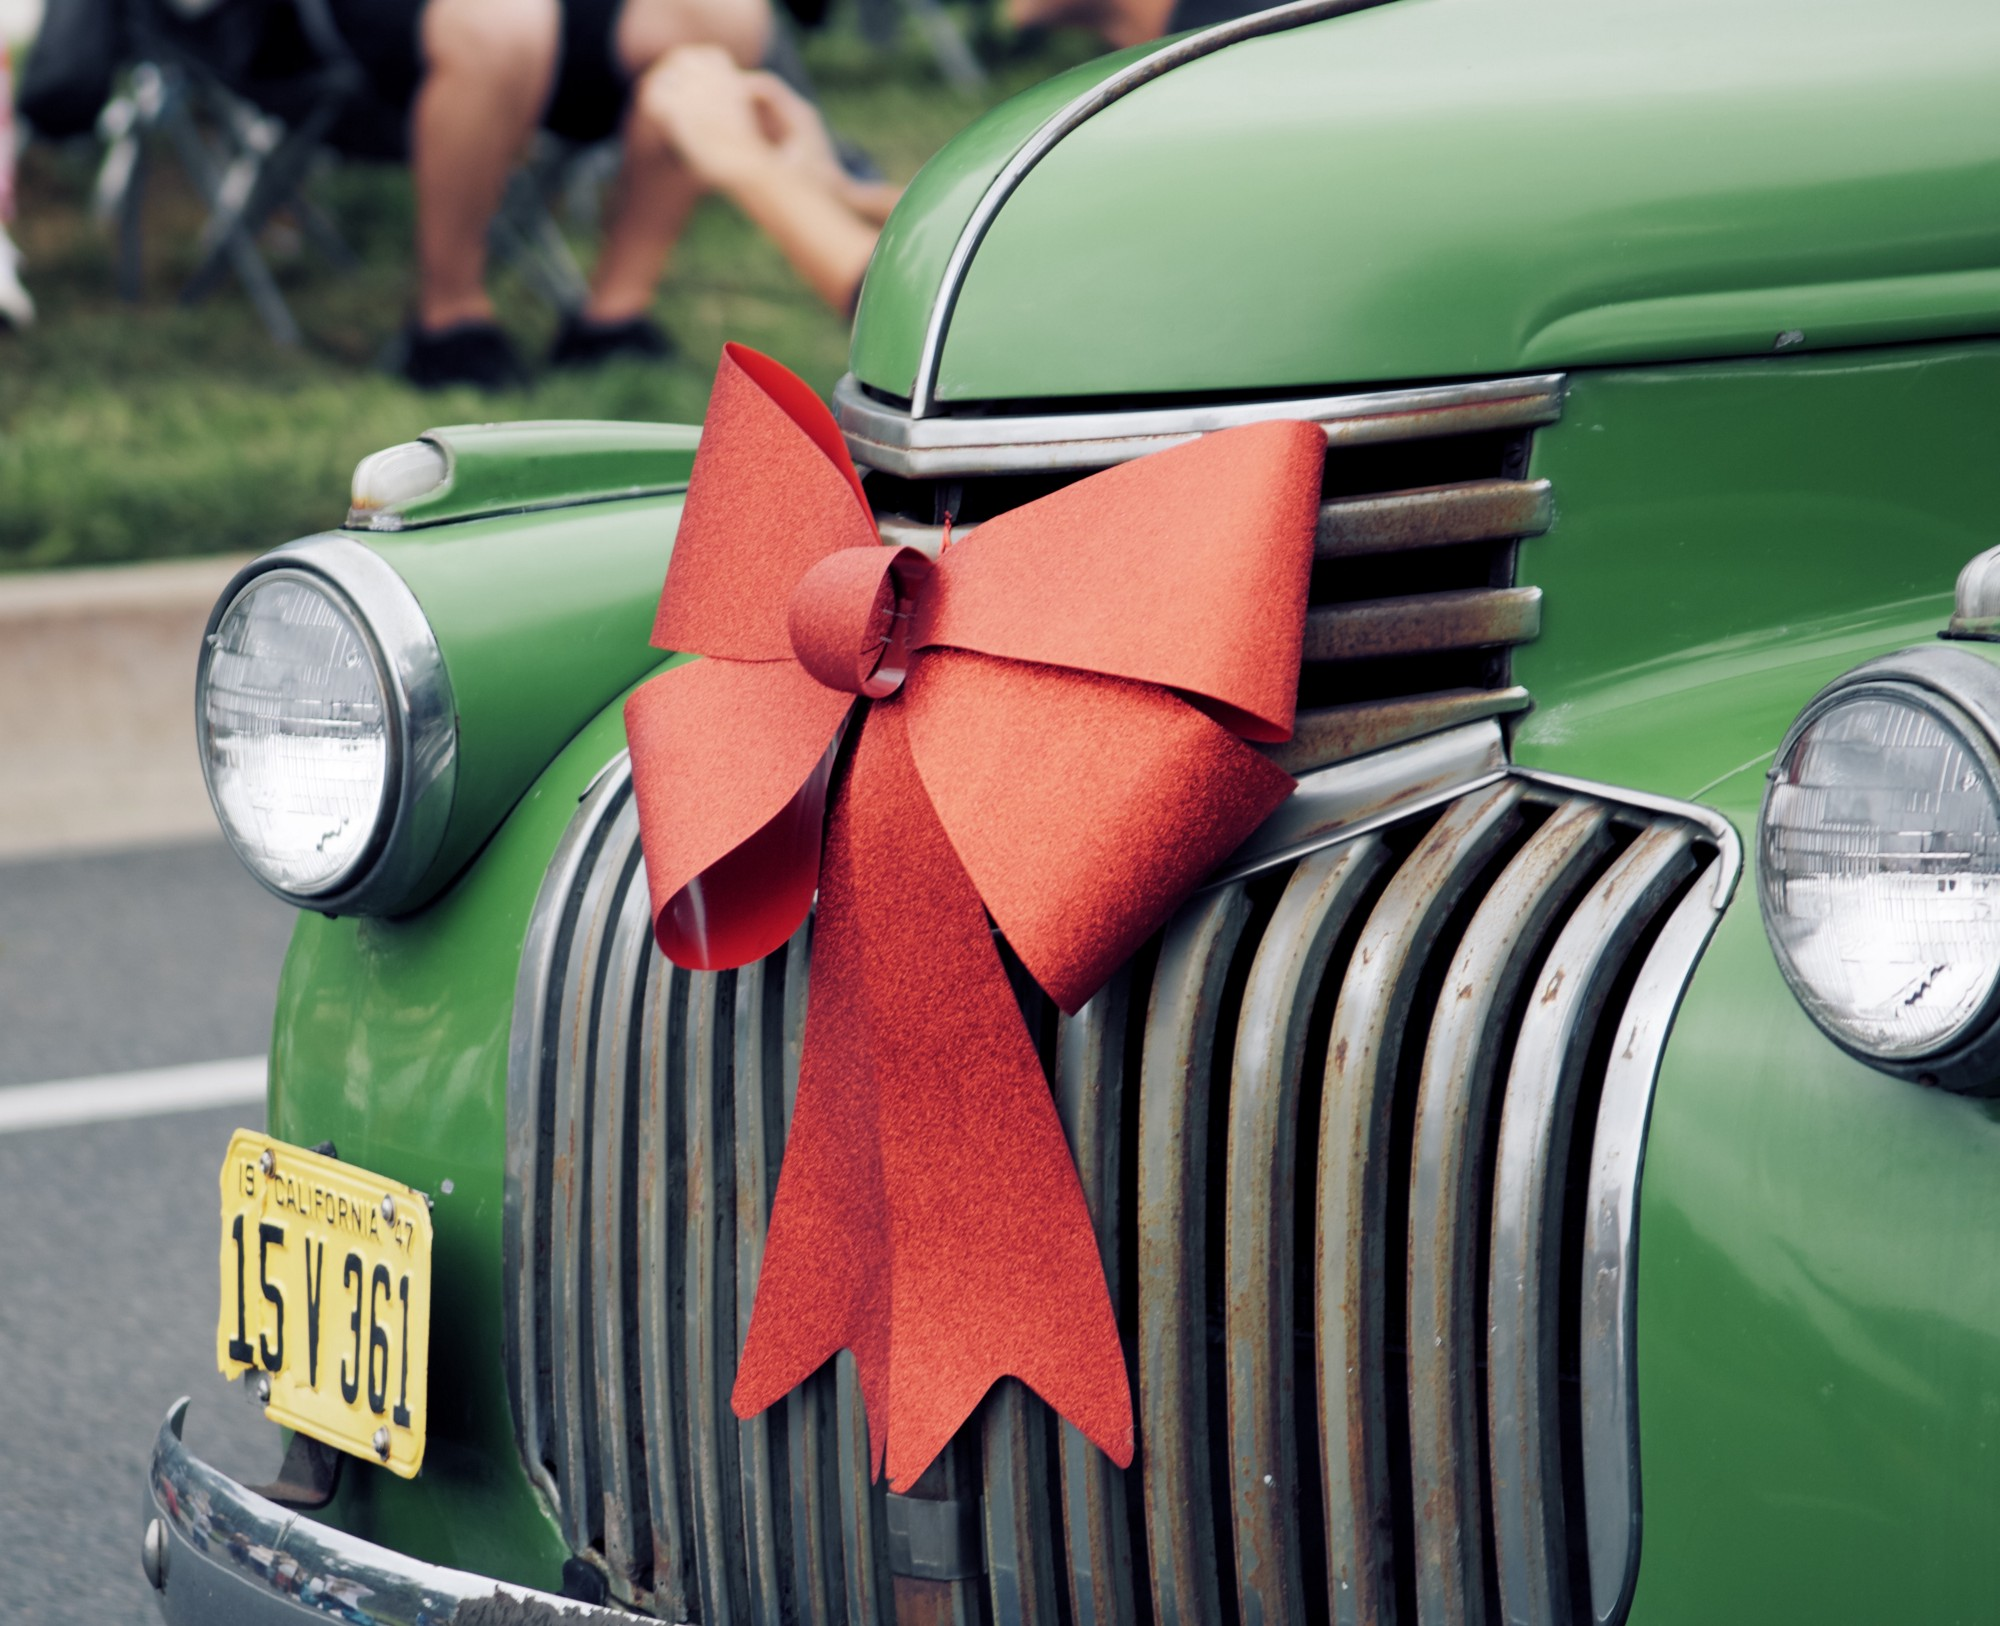 Green car, sporting a big jolly red ribbon of hope. Hope — we need it in all our endings and beginnings.